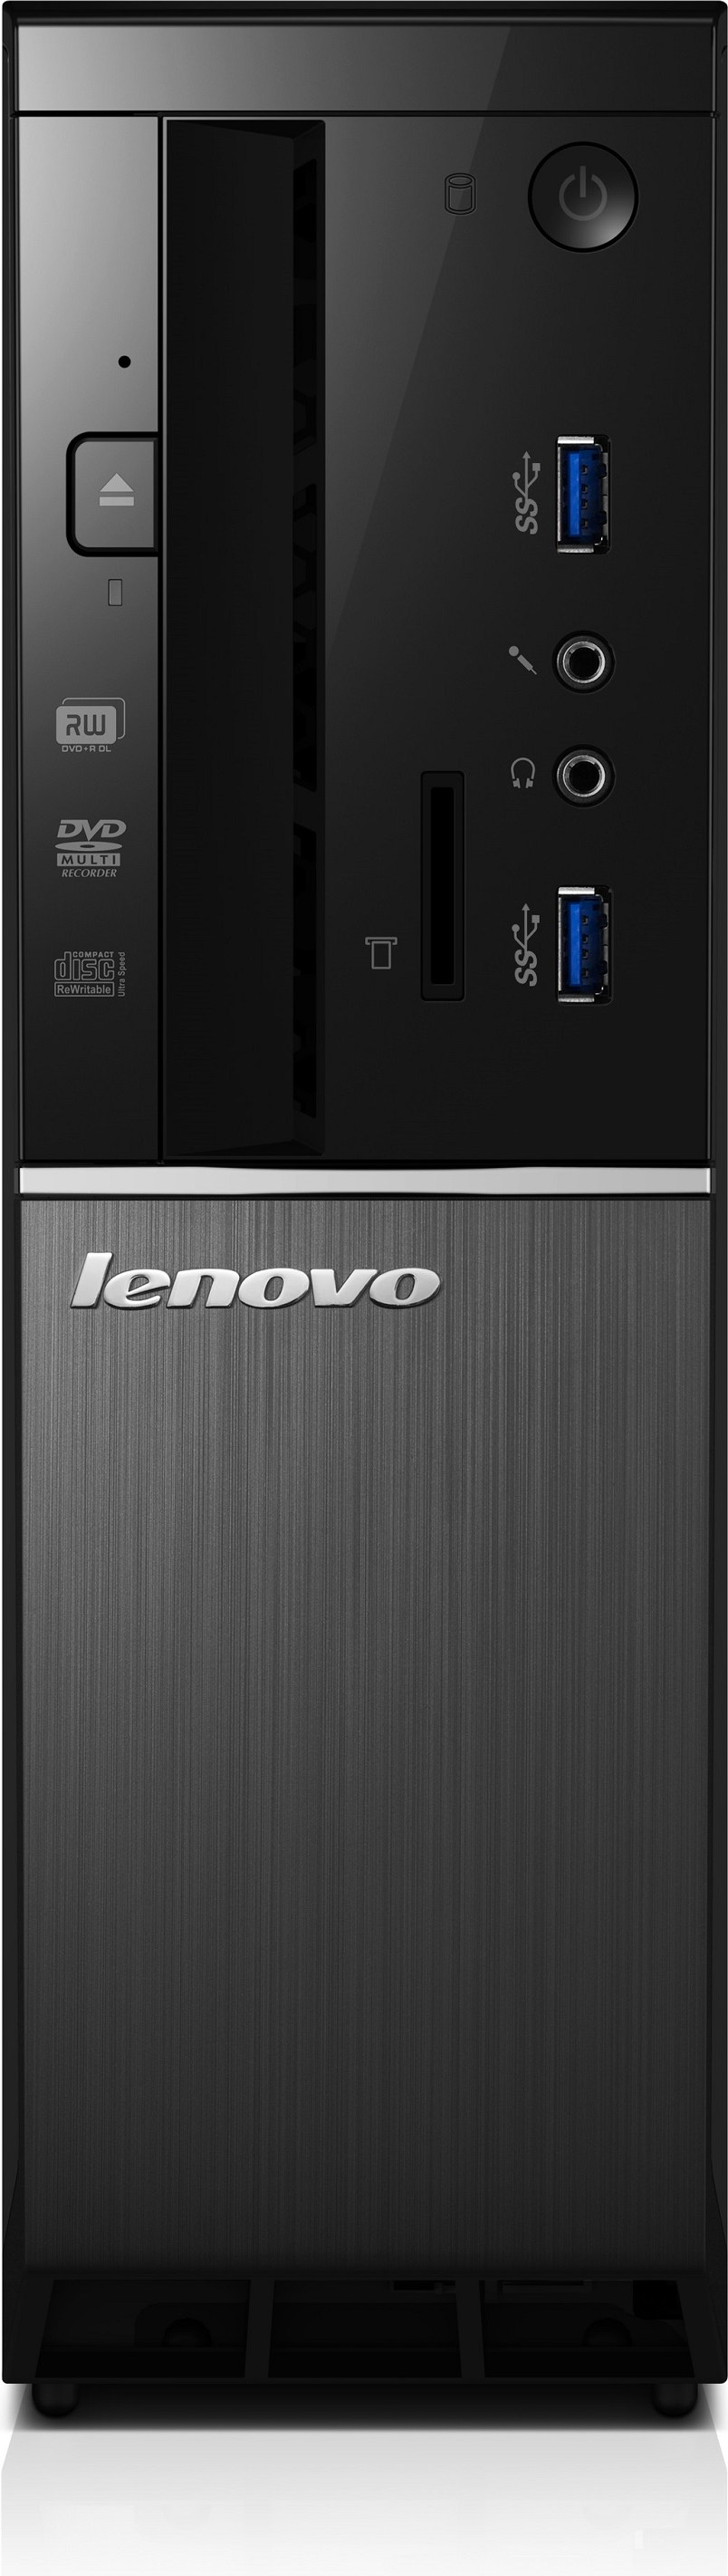 Lenovo IdeaCentre 510S 90GB002HCK